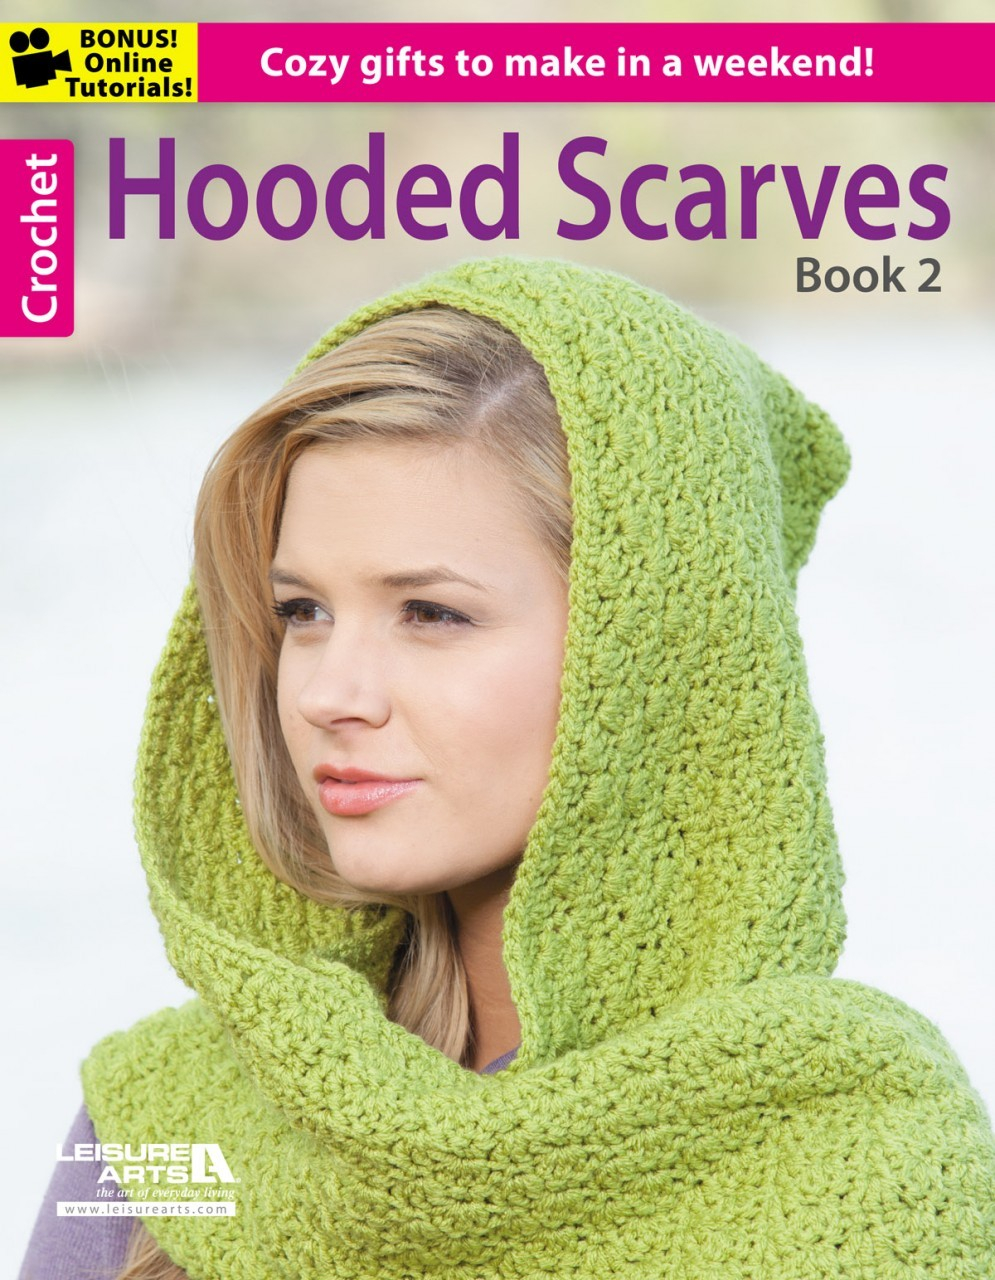 Knitted Hood Scarf Pattern Hooded Scarves Book 2